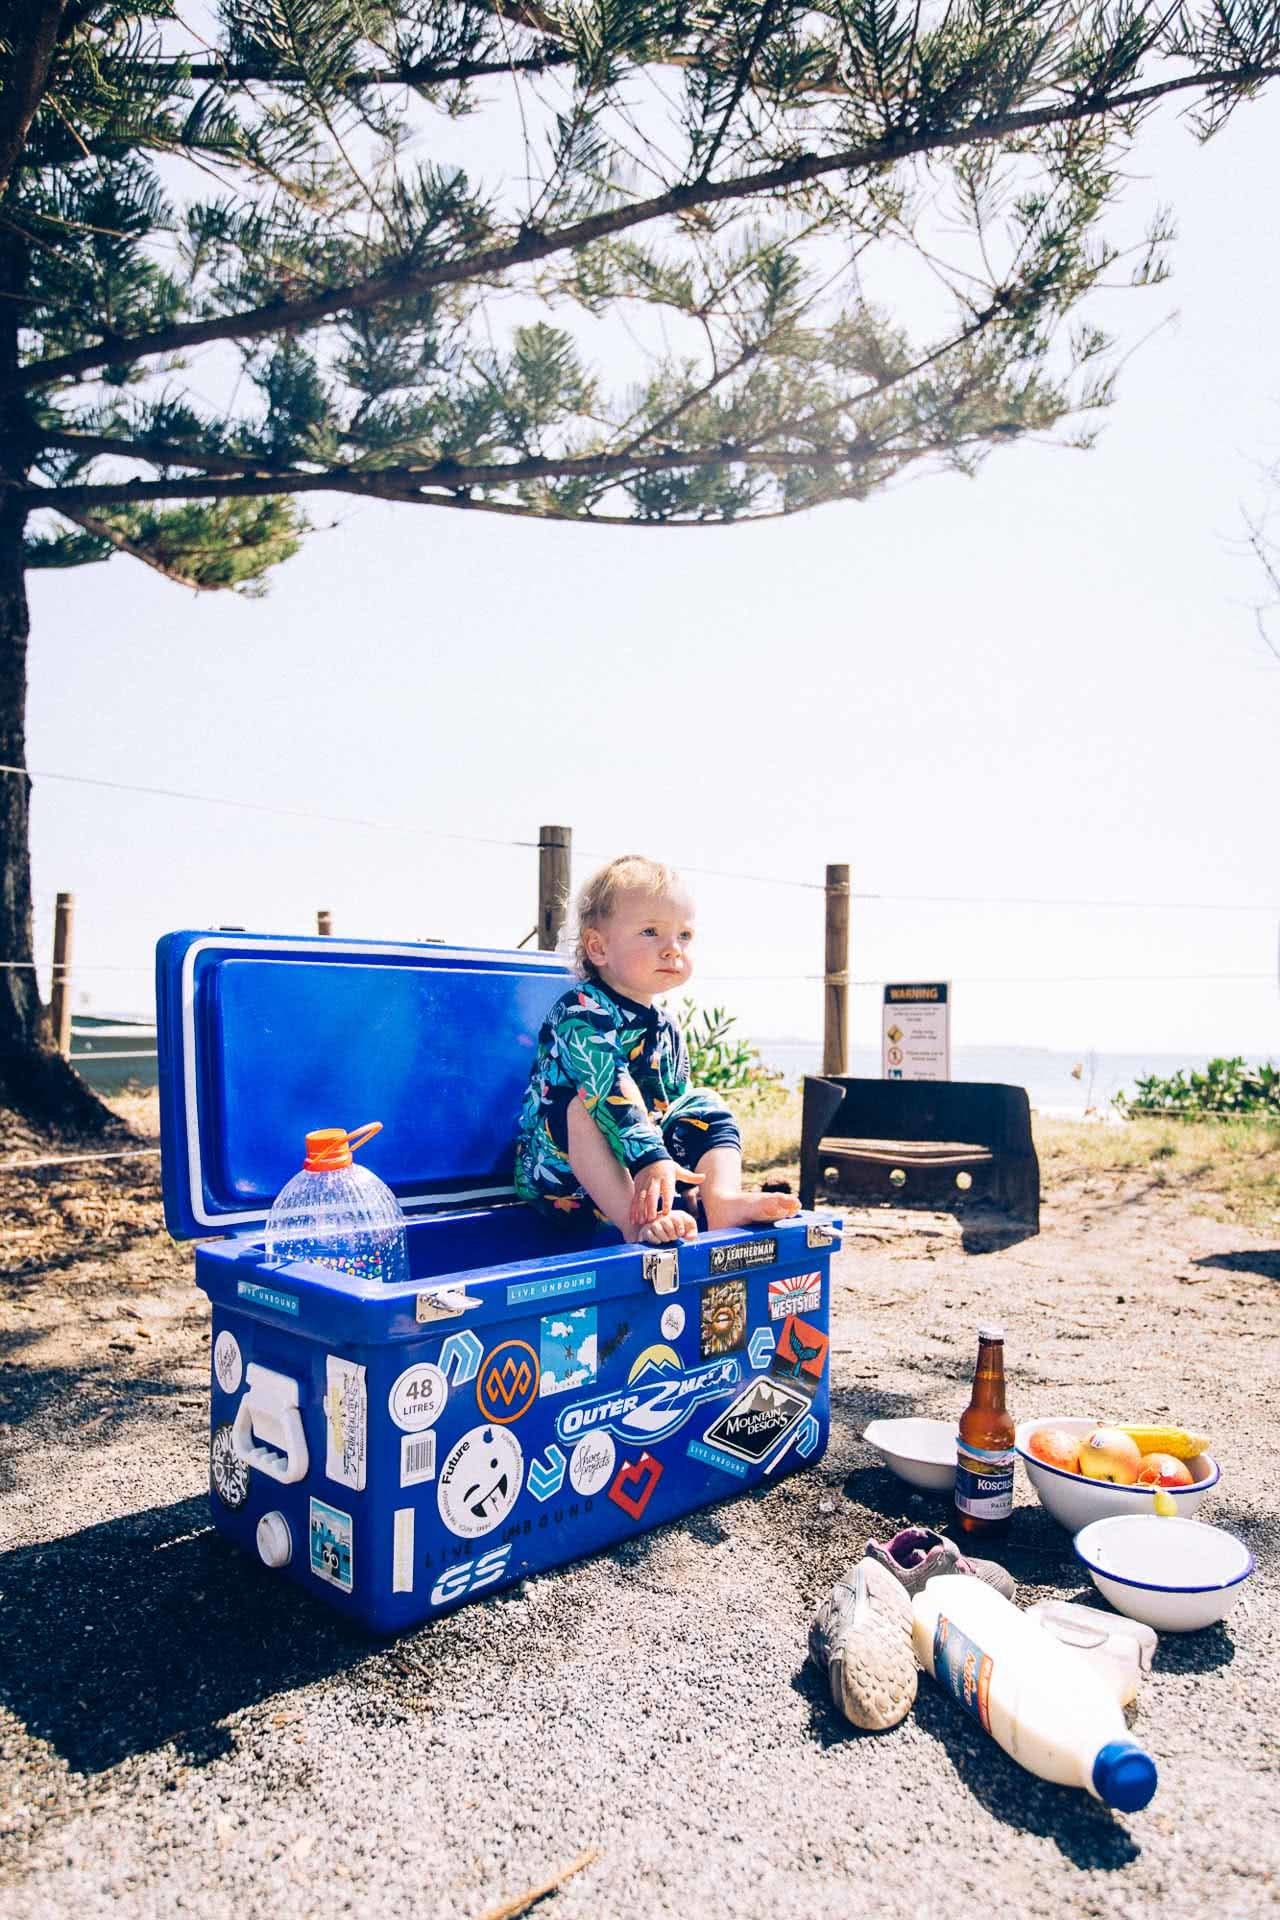 Stay Home Is the Order, but what if You're a Nomad?, photo by Henry Brydon, sandon river, car camping, nomads, baby, esky, cooler